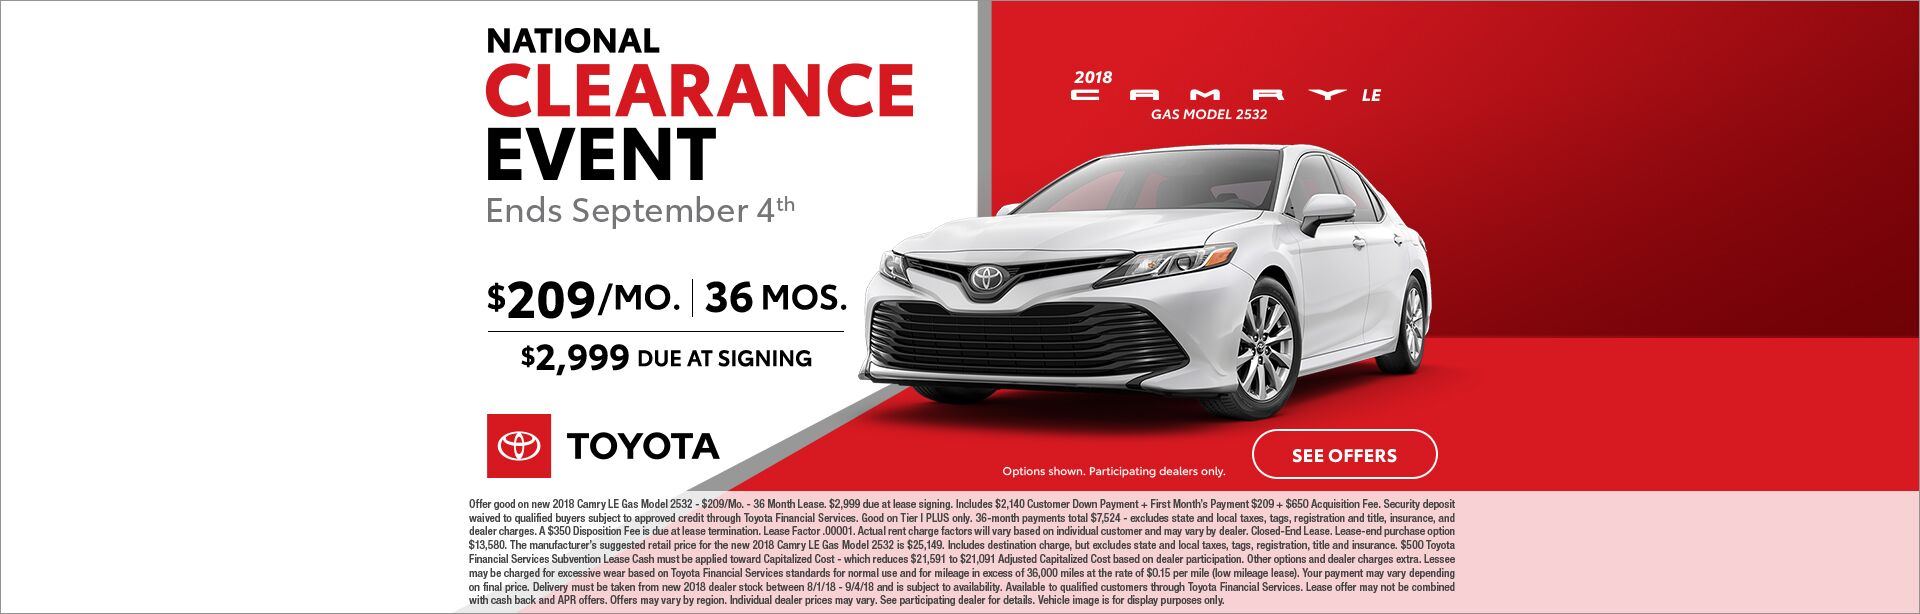 Camry Lease National Clearance Event 2018